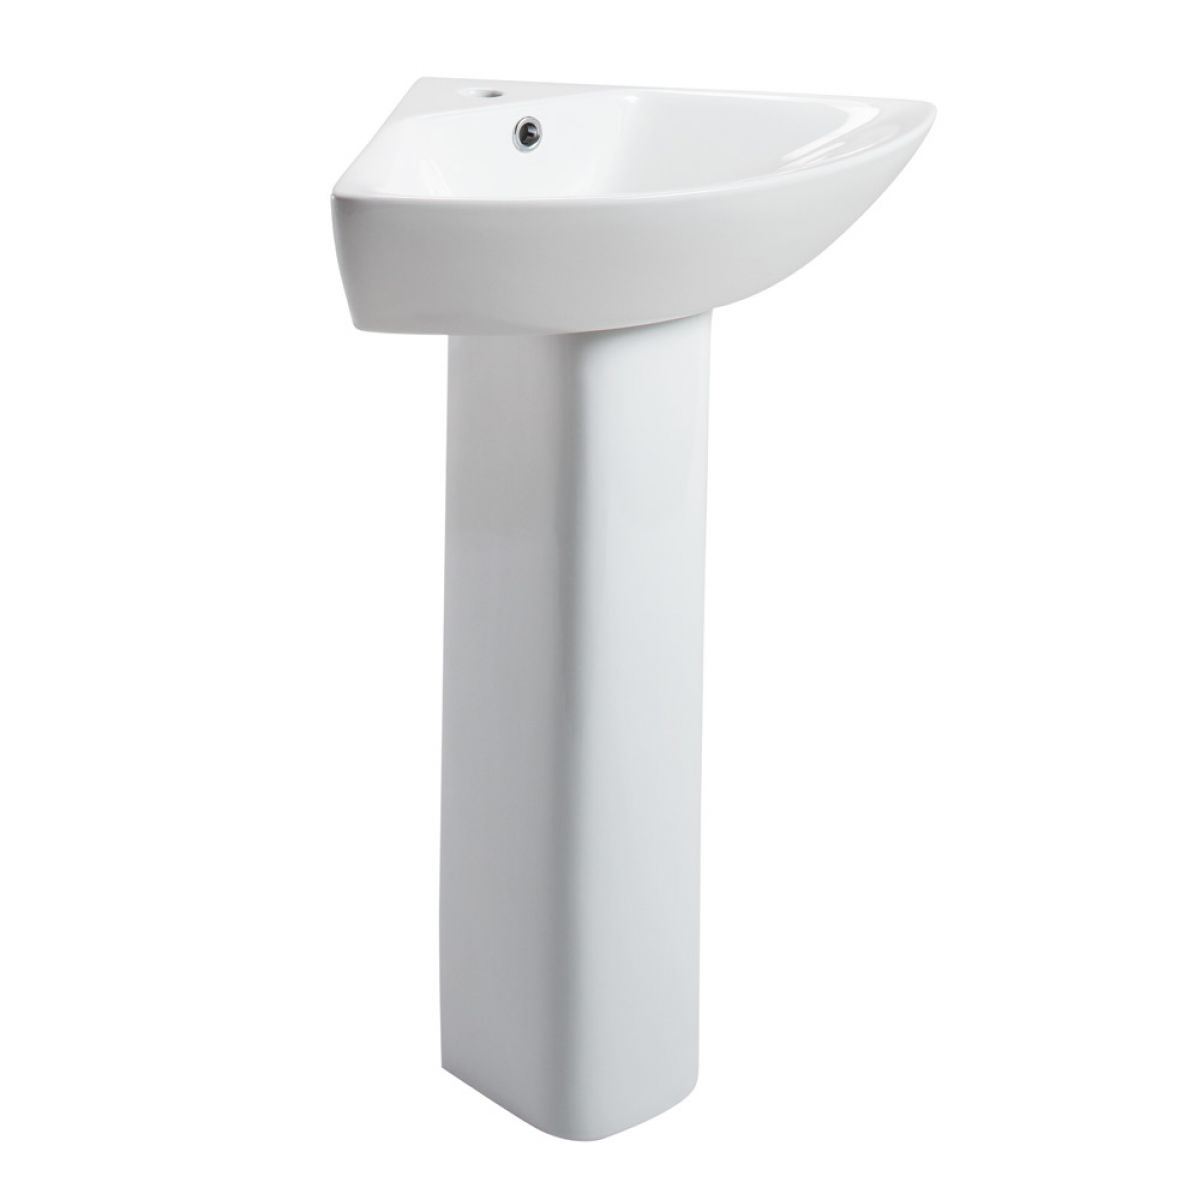 Cassellie Spek 1 Tap Hole Corner Basin with Full Pedestal